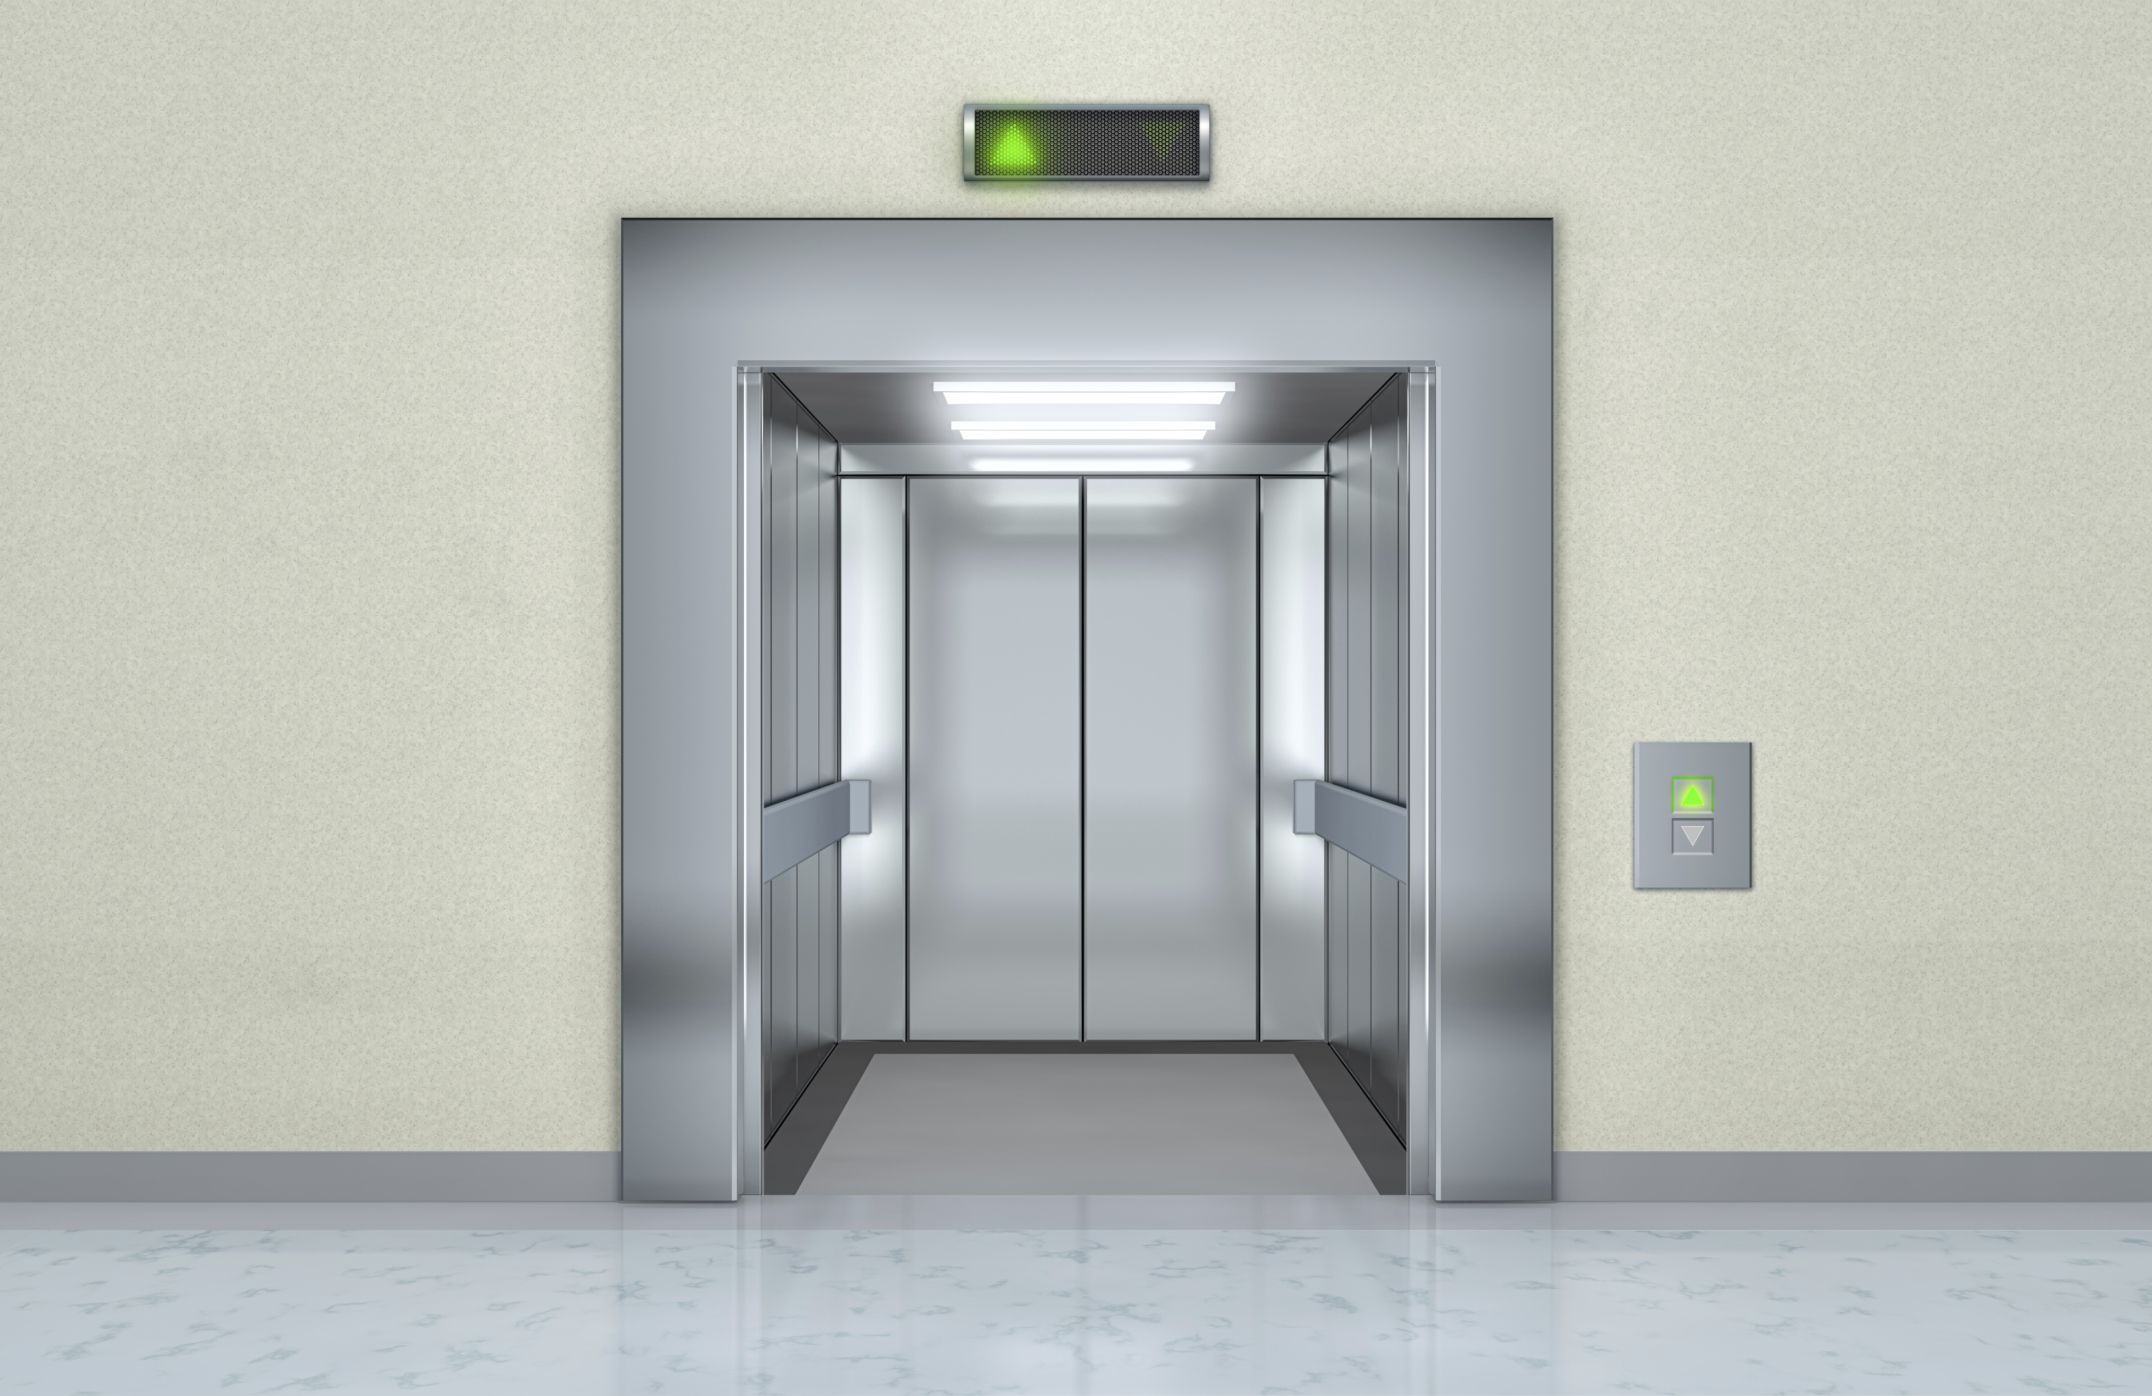 How to Build a Model Elevator Science Project